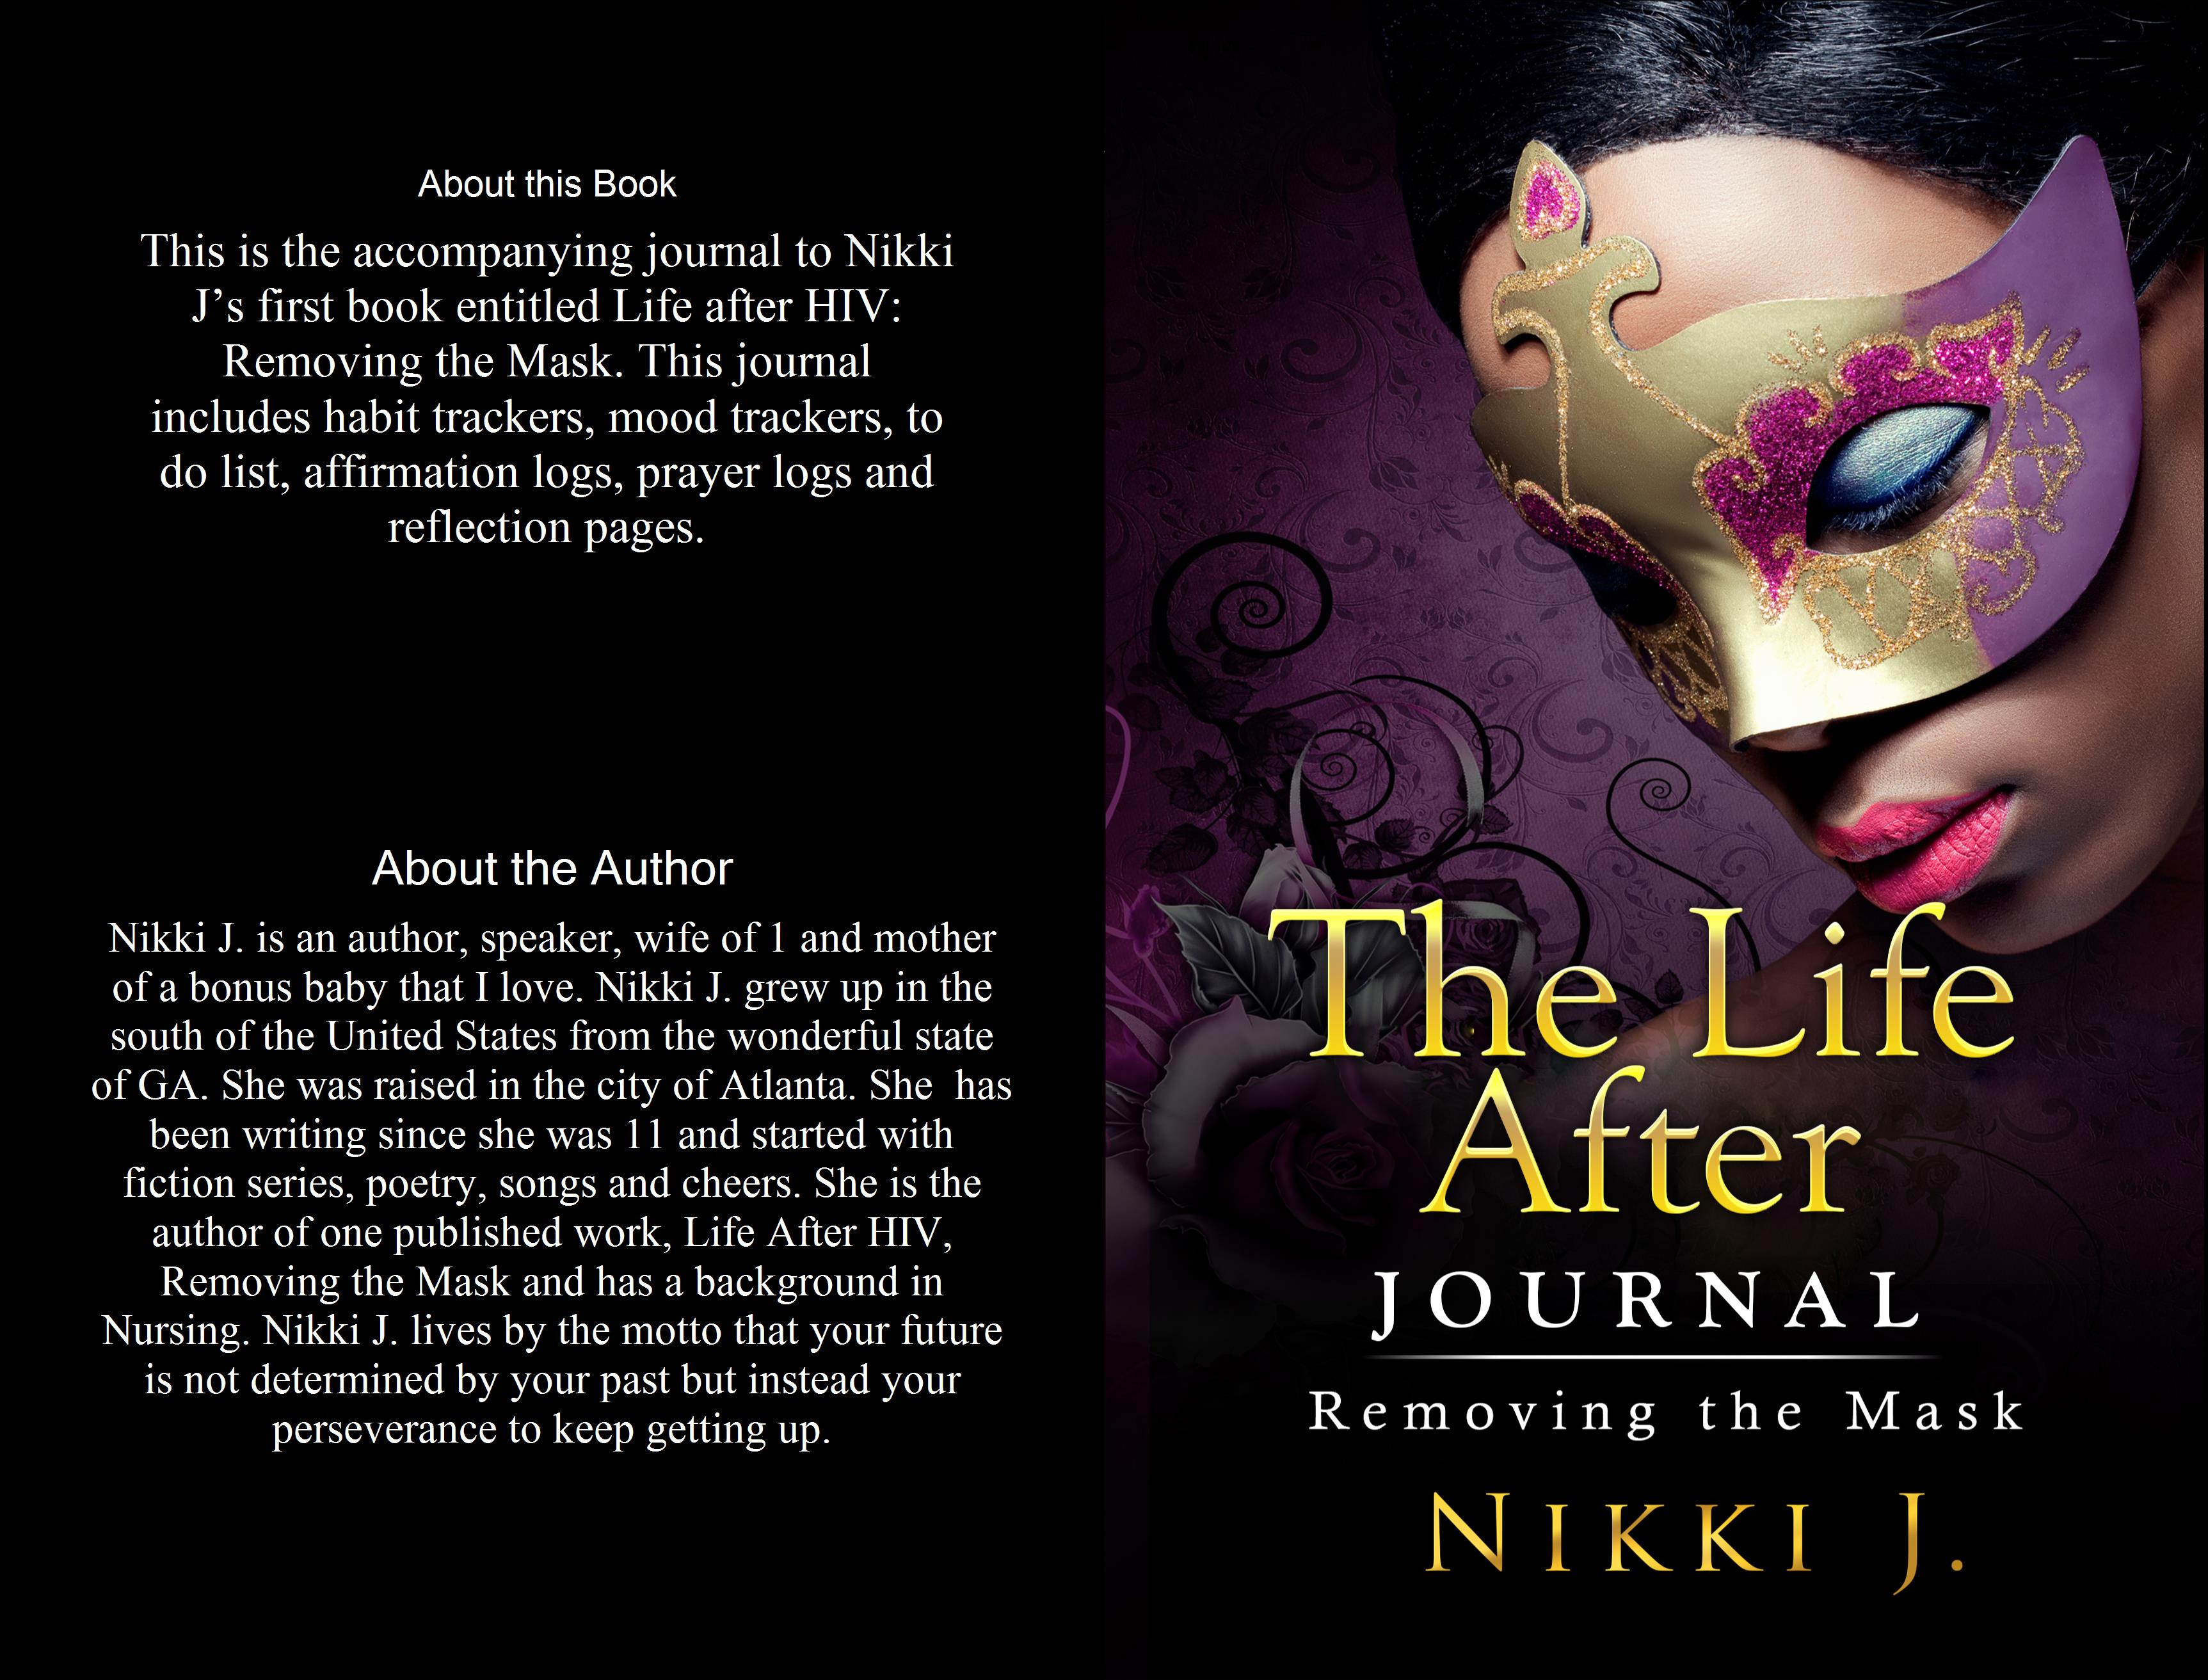 The Life After Journal: Removing the Mask cover image